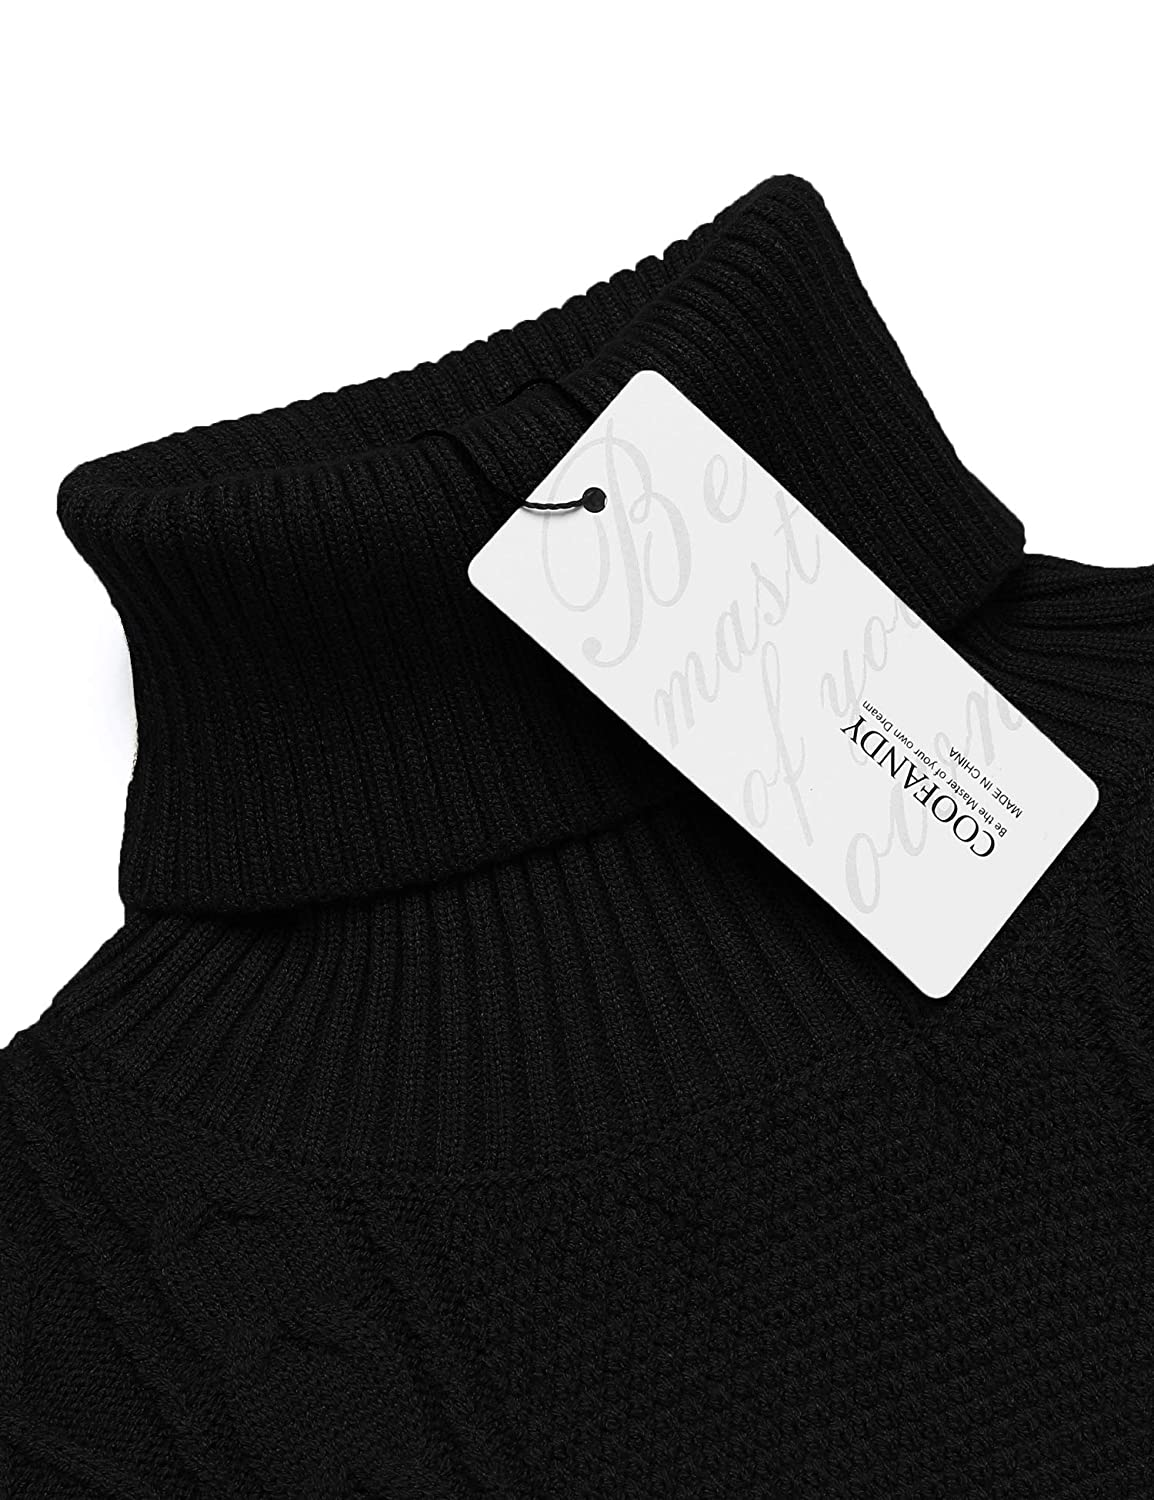 COOFANDY Mens Slim fit Turtleneck Sweater Casual Cable Knitted Pullover Sweaters